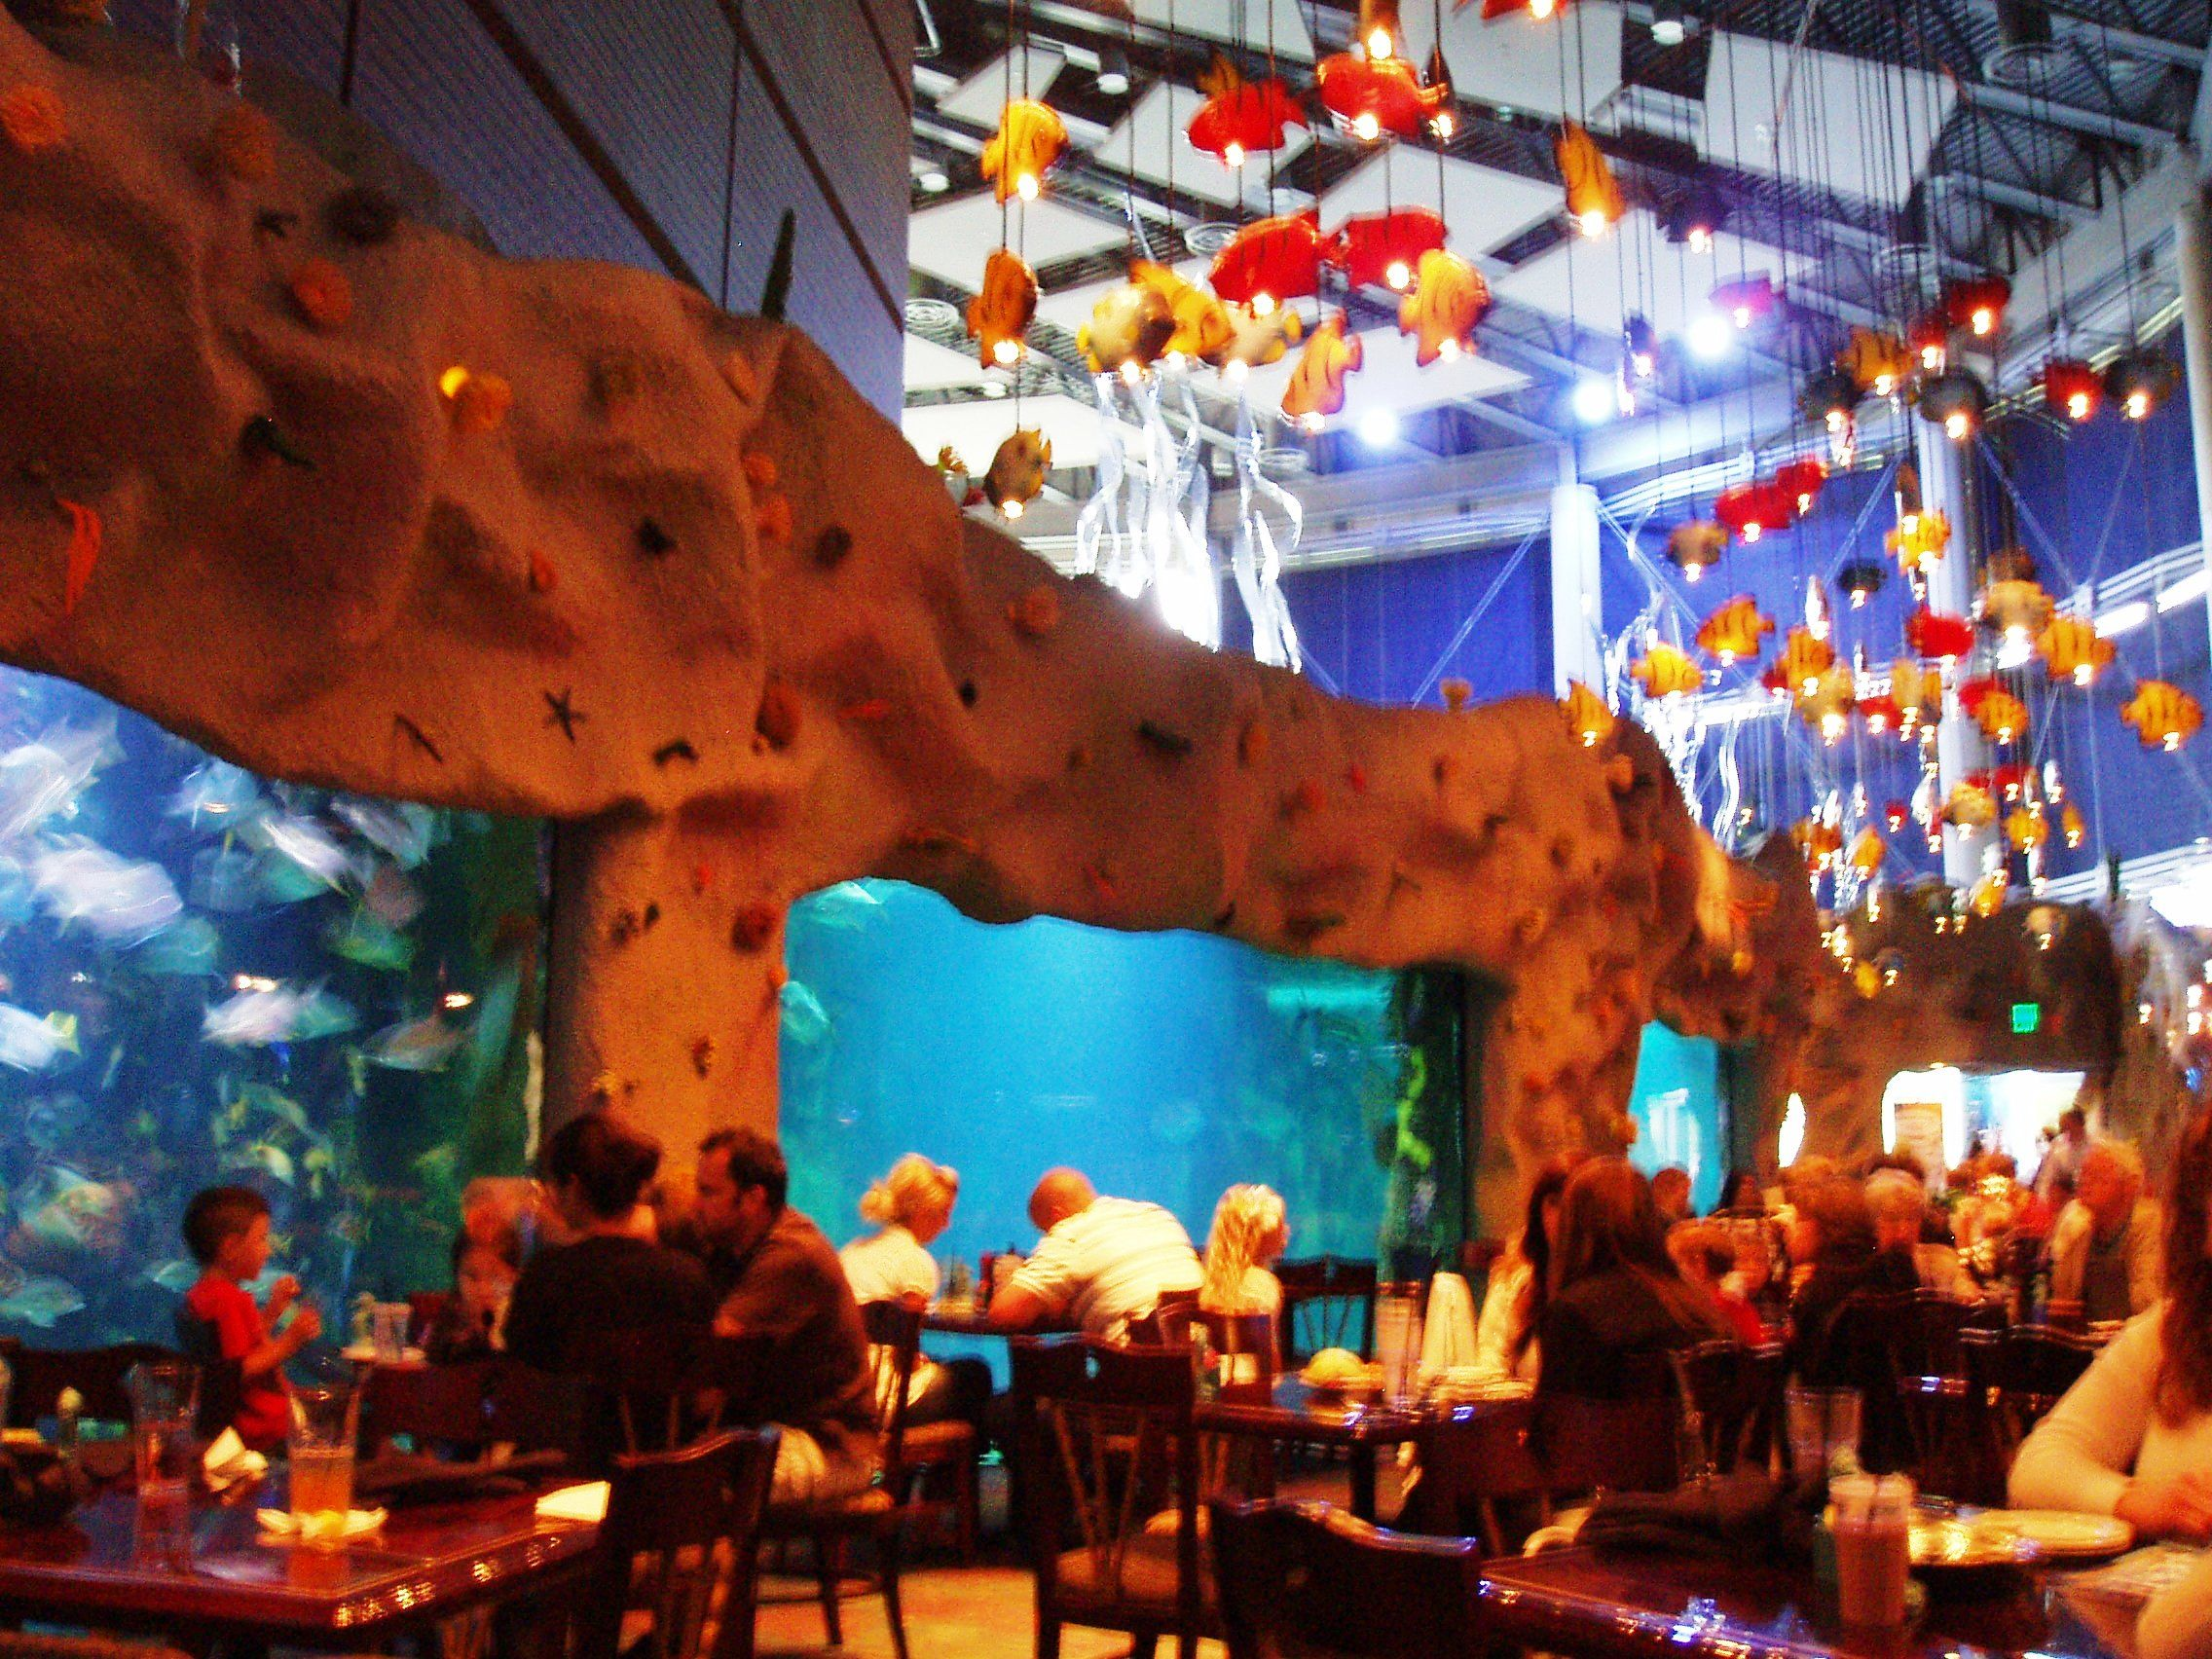 Fish aquarium in downtown toronto - Denver S Downtown Aquarium Dinner Is Good Here And Don T Miss The